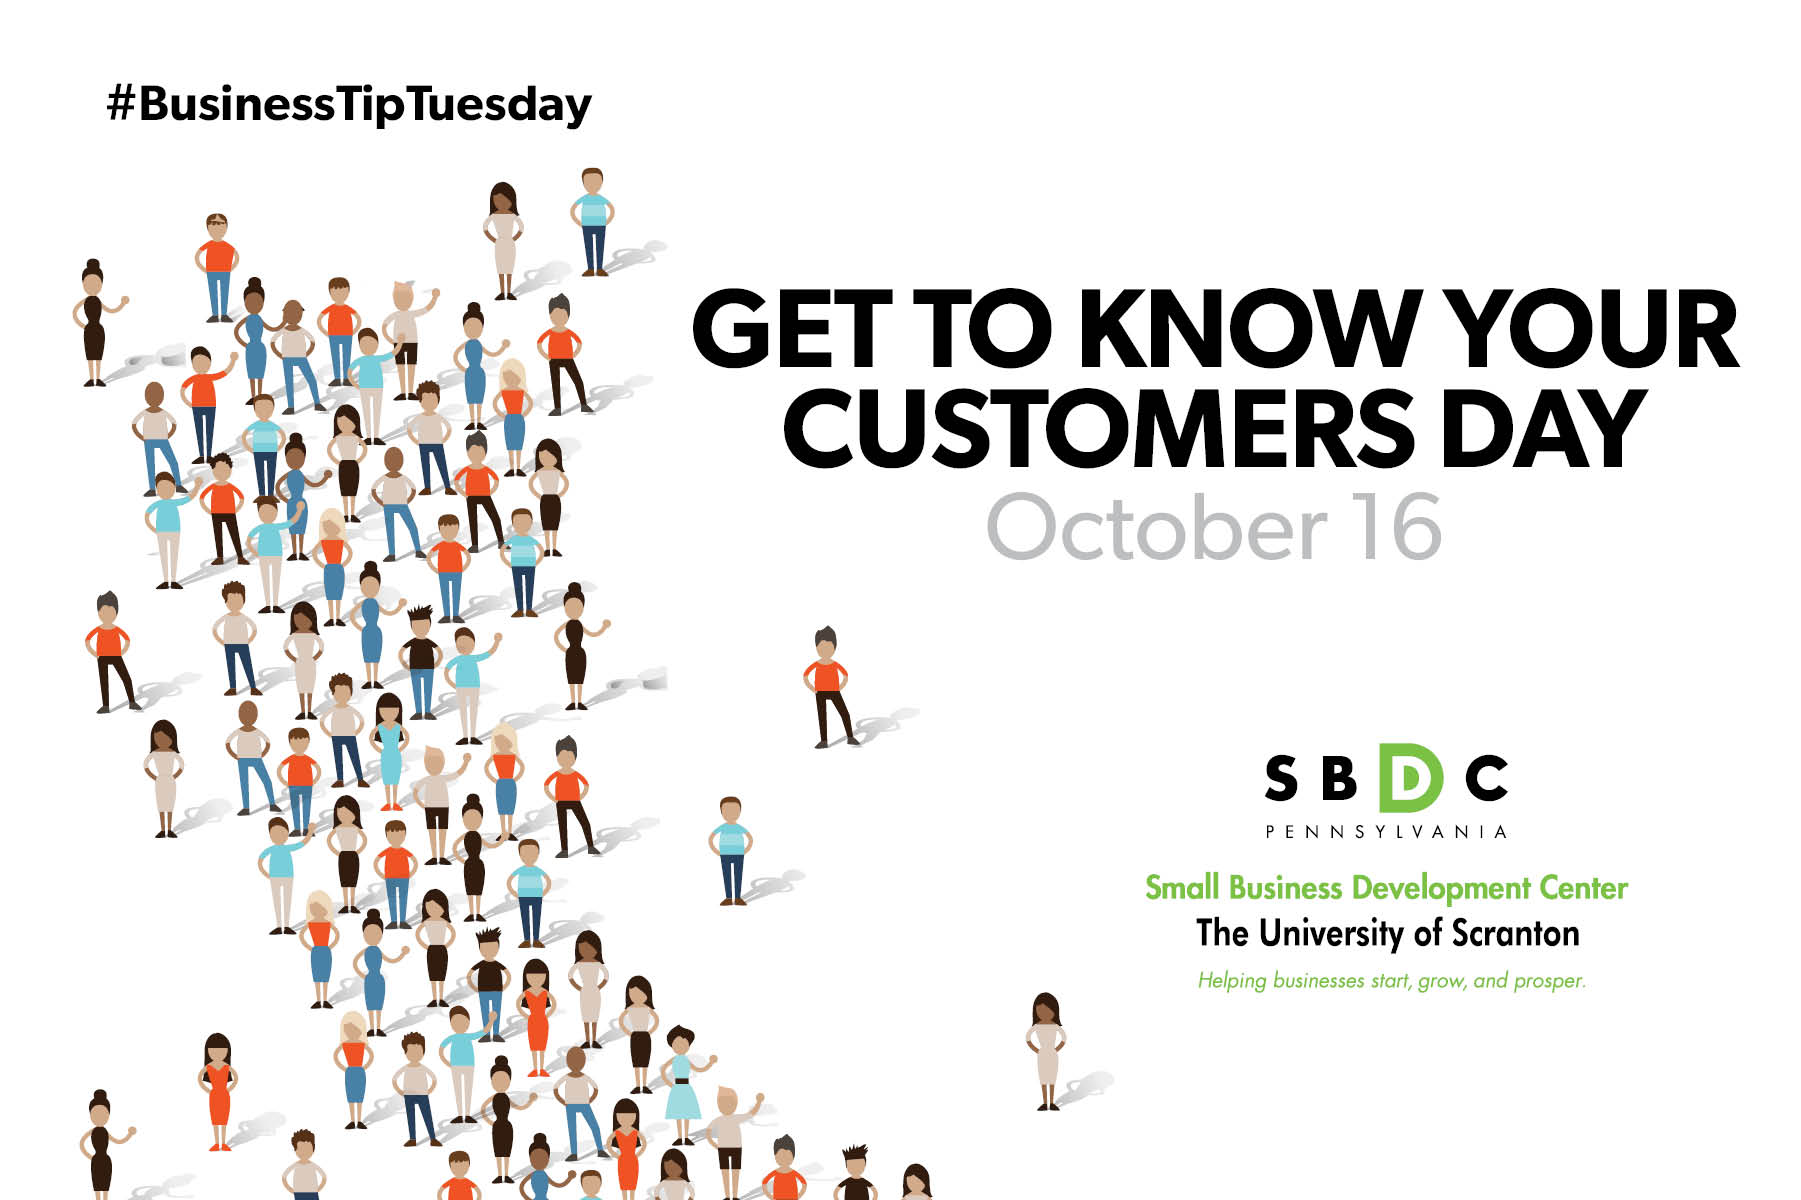 #BusinessTipTuesday – Get to Know Your Customers Day